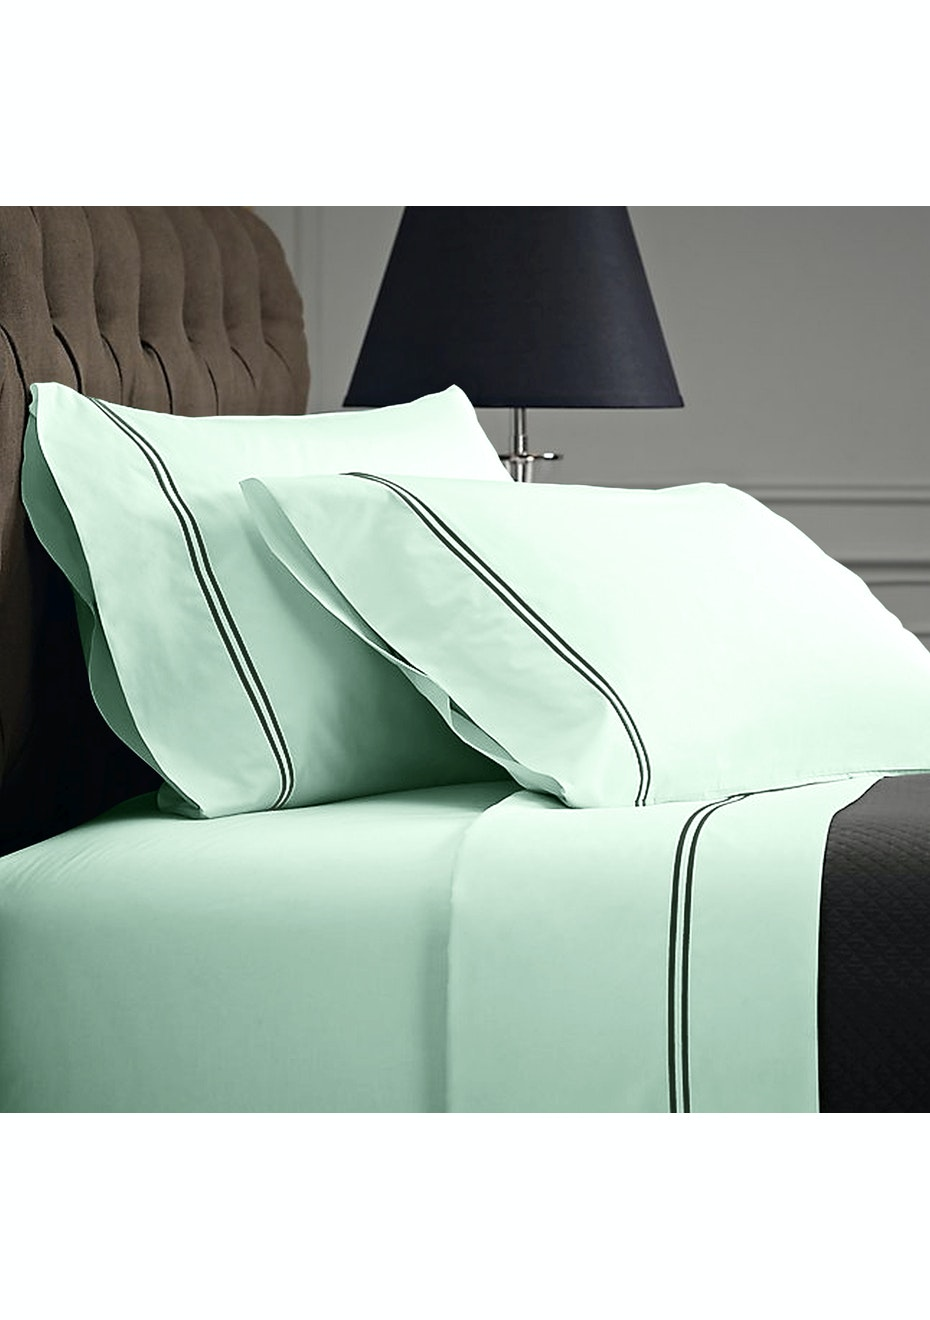 Style & Co 1000 Thread count Egyptian Cotton Hotel Collection Sorrento Sheet sets Mega Queen Mist